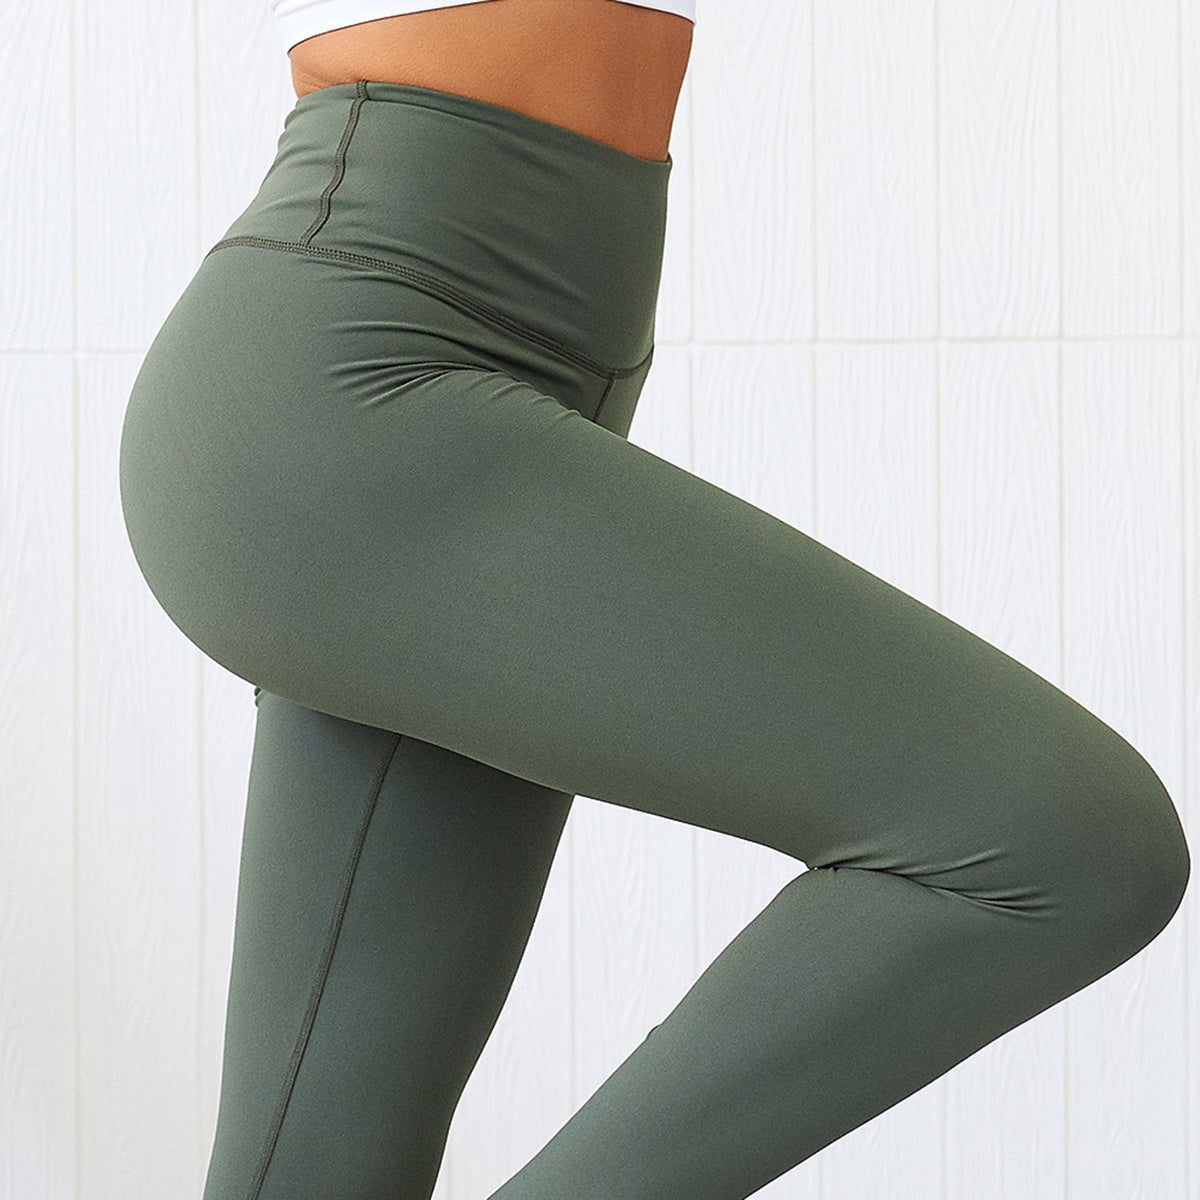 Scrunch Butt Lift peach butt Fitness Pants Yoga Pants - worthtryit.com